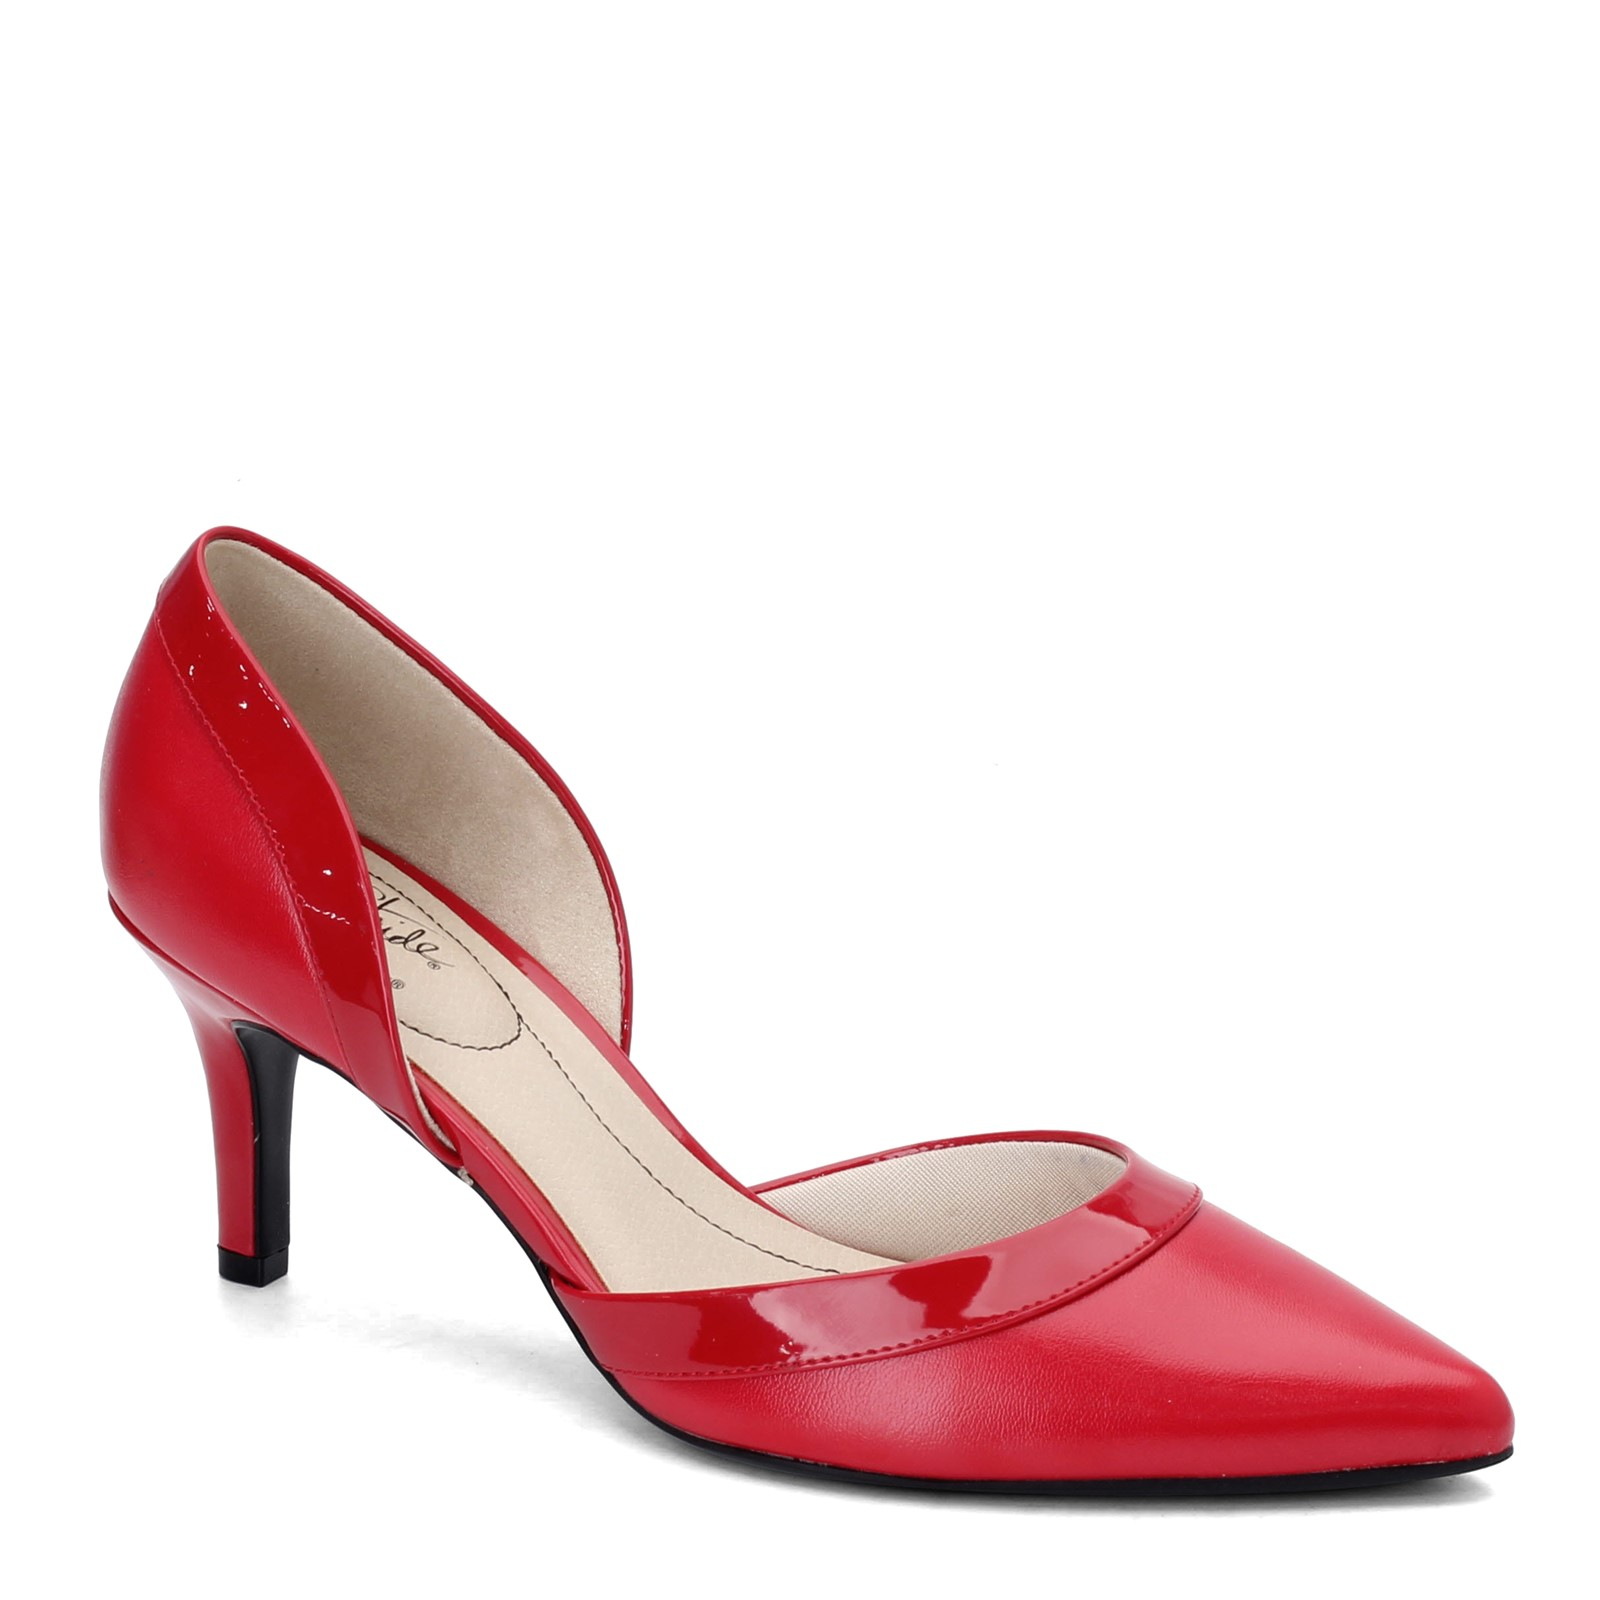 Women's Lifestride, Saldana Pump